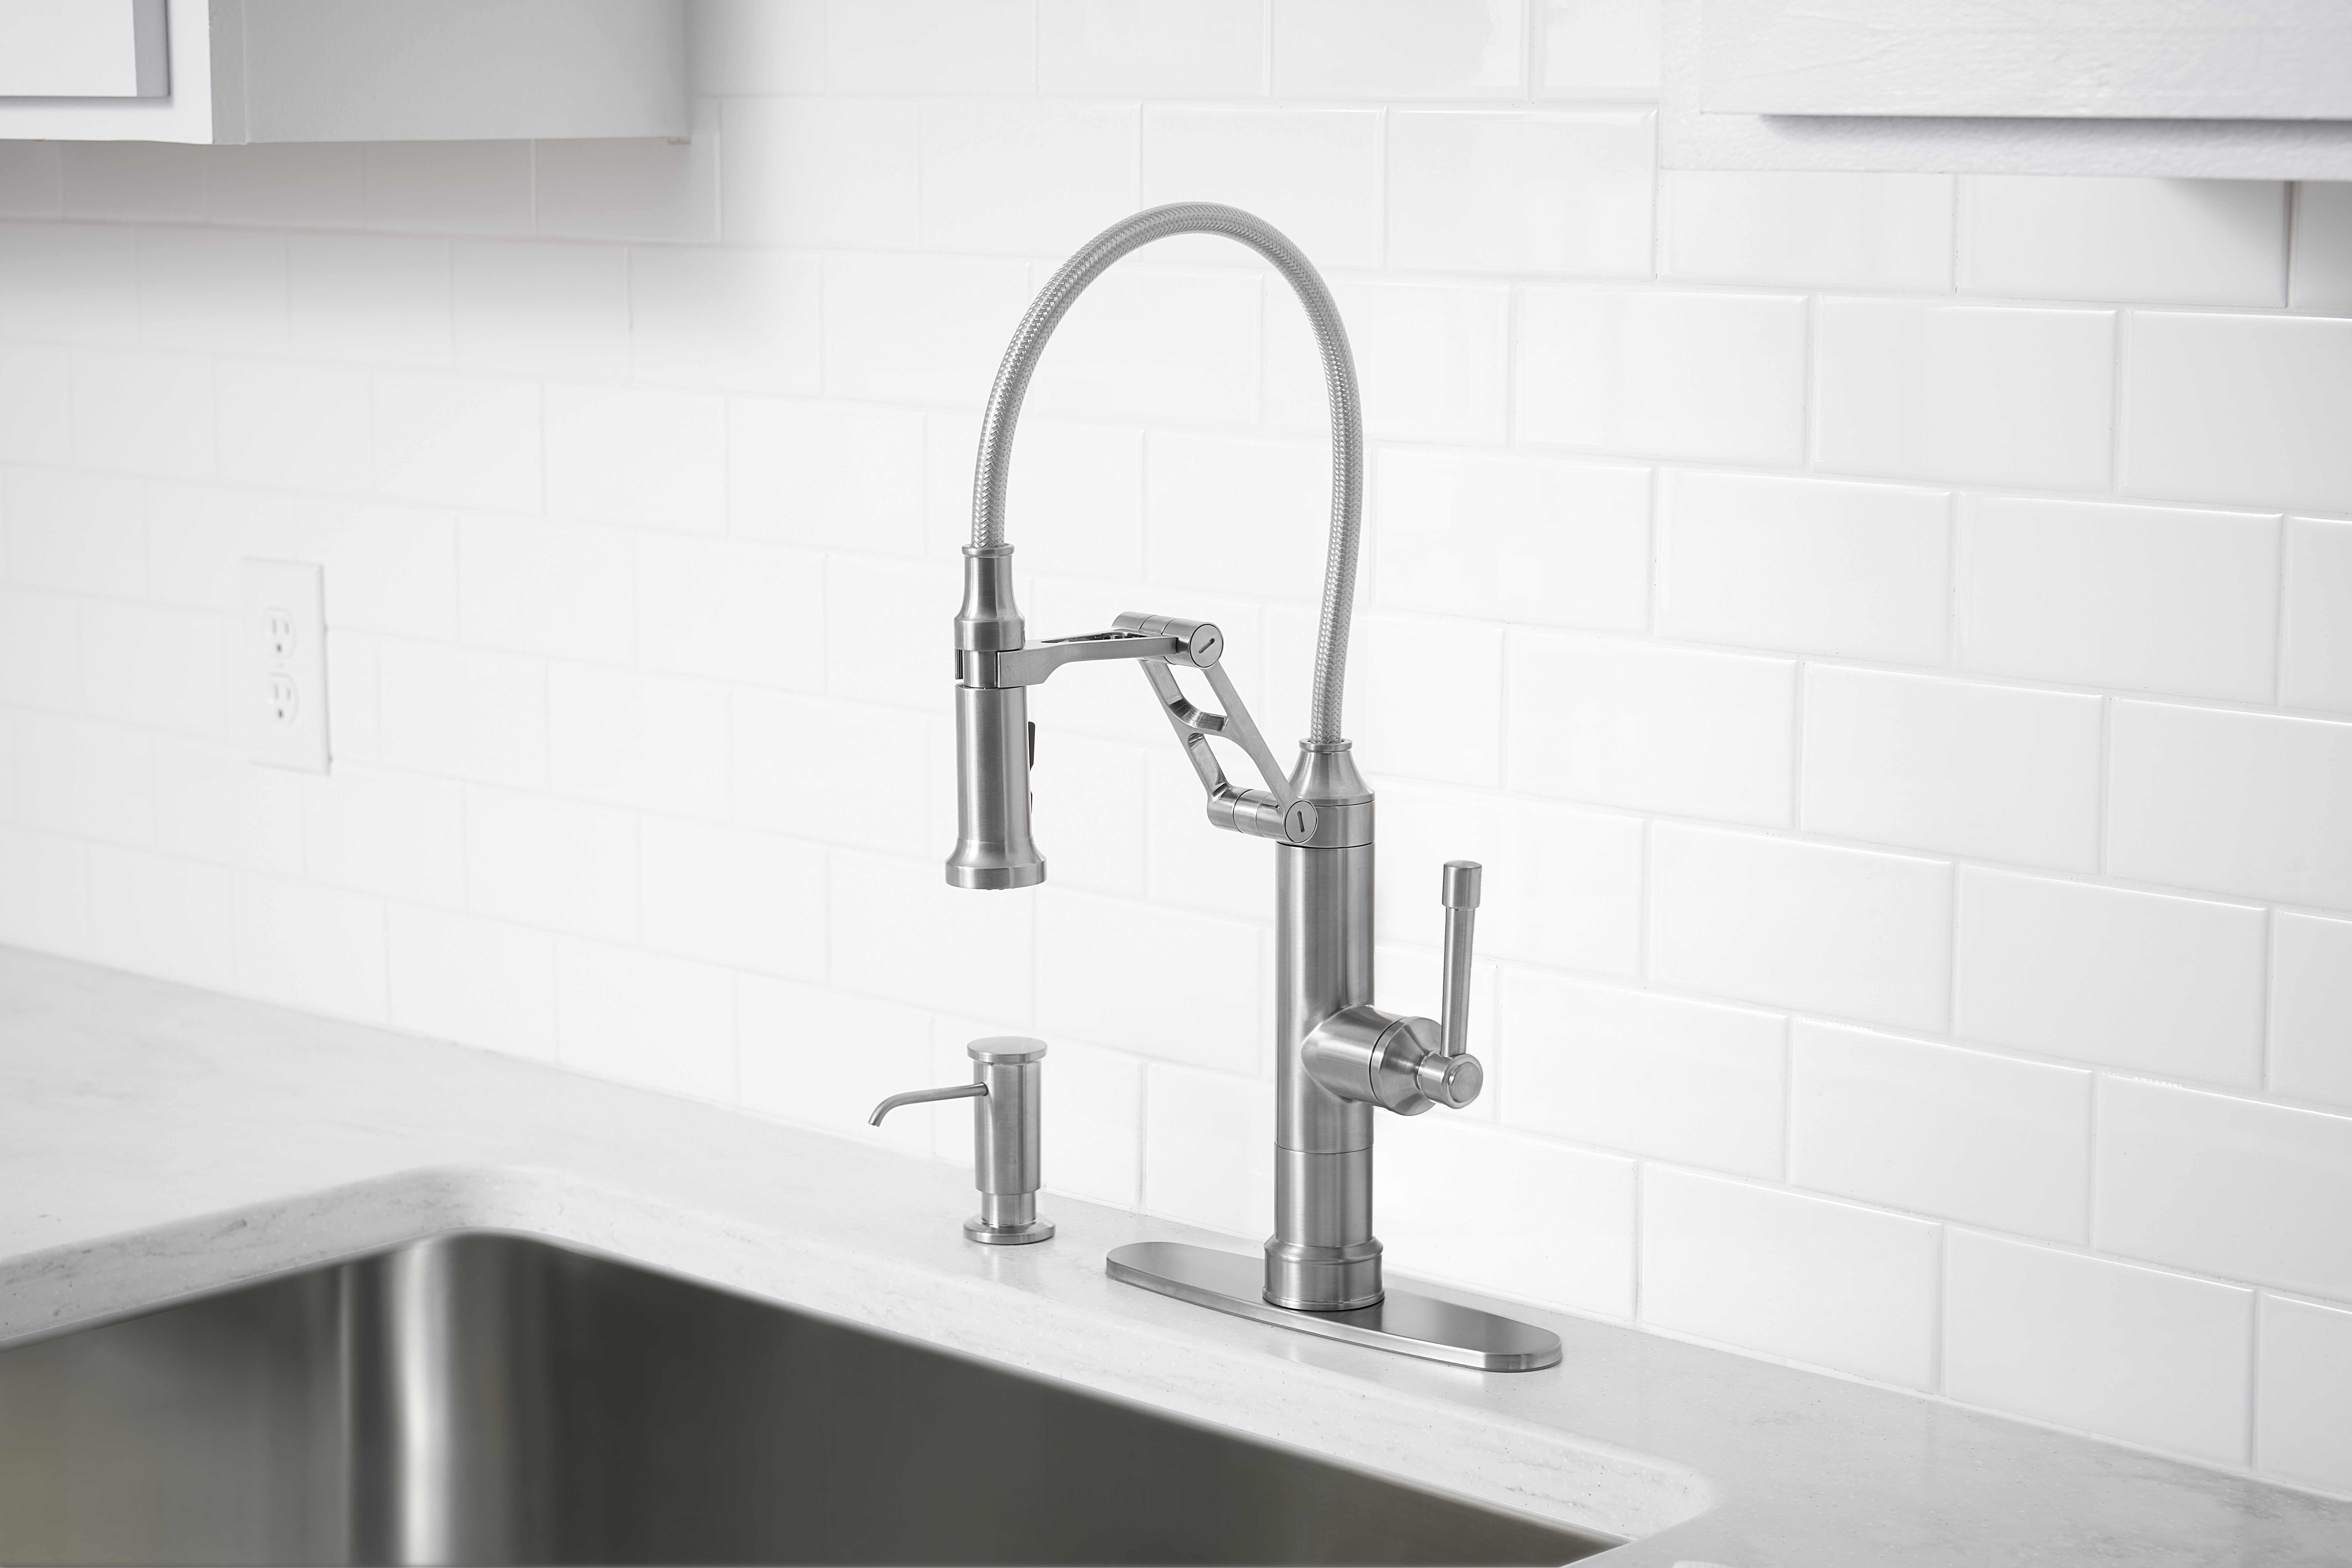 Strattura Pull Down Single Handle Kitchen Faucet with Soap Dispenser